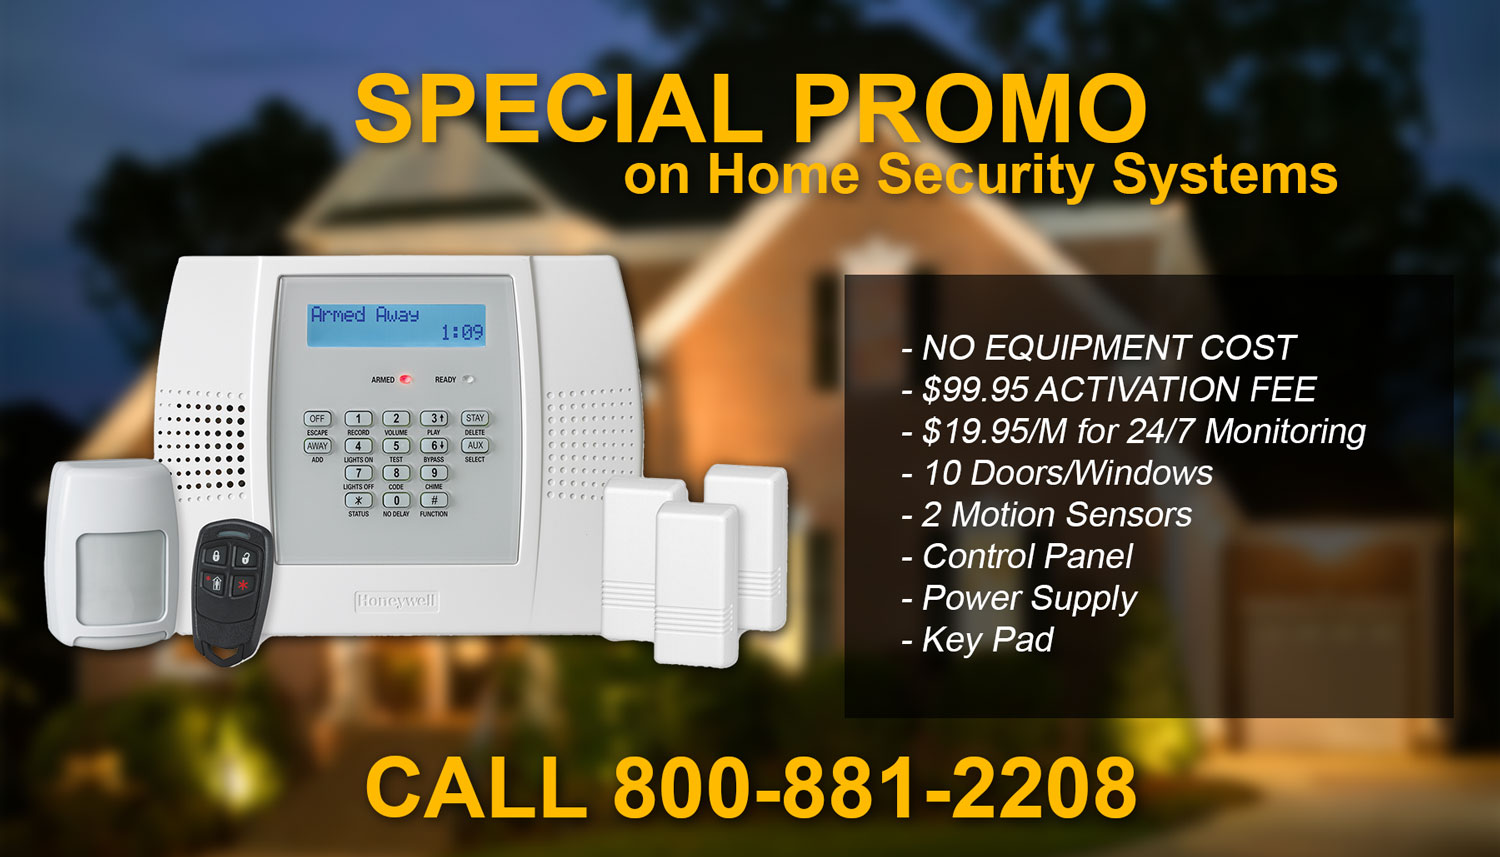 Security system store discount coupons